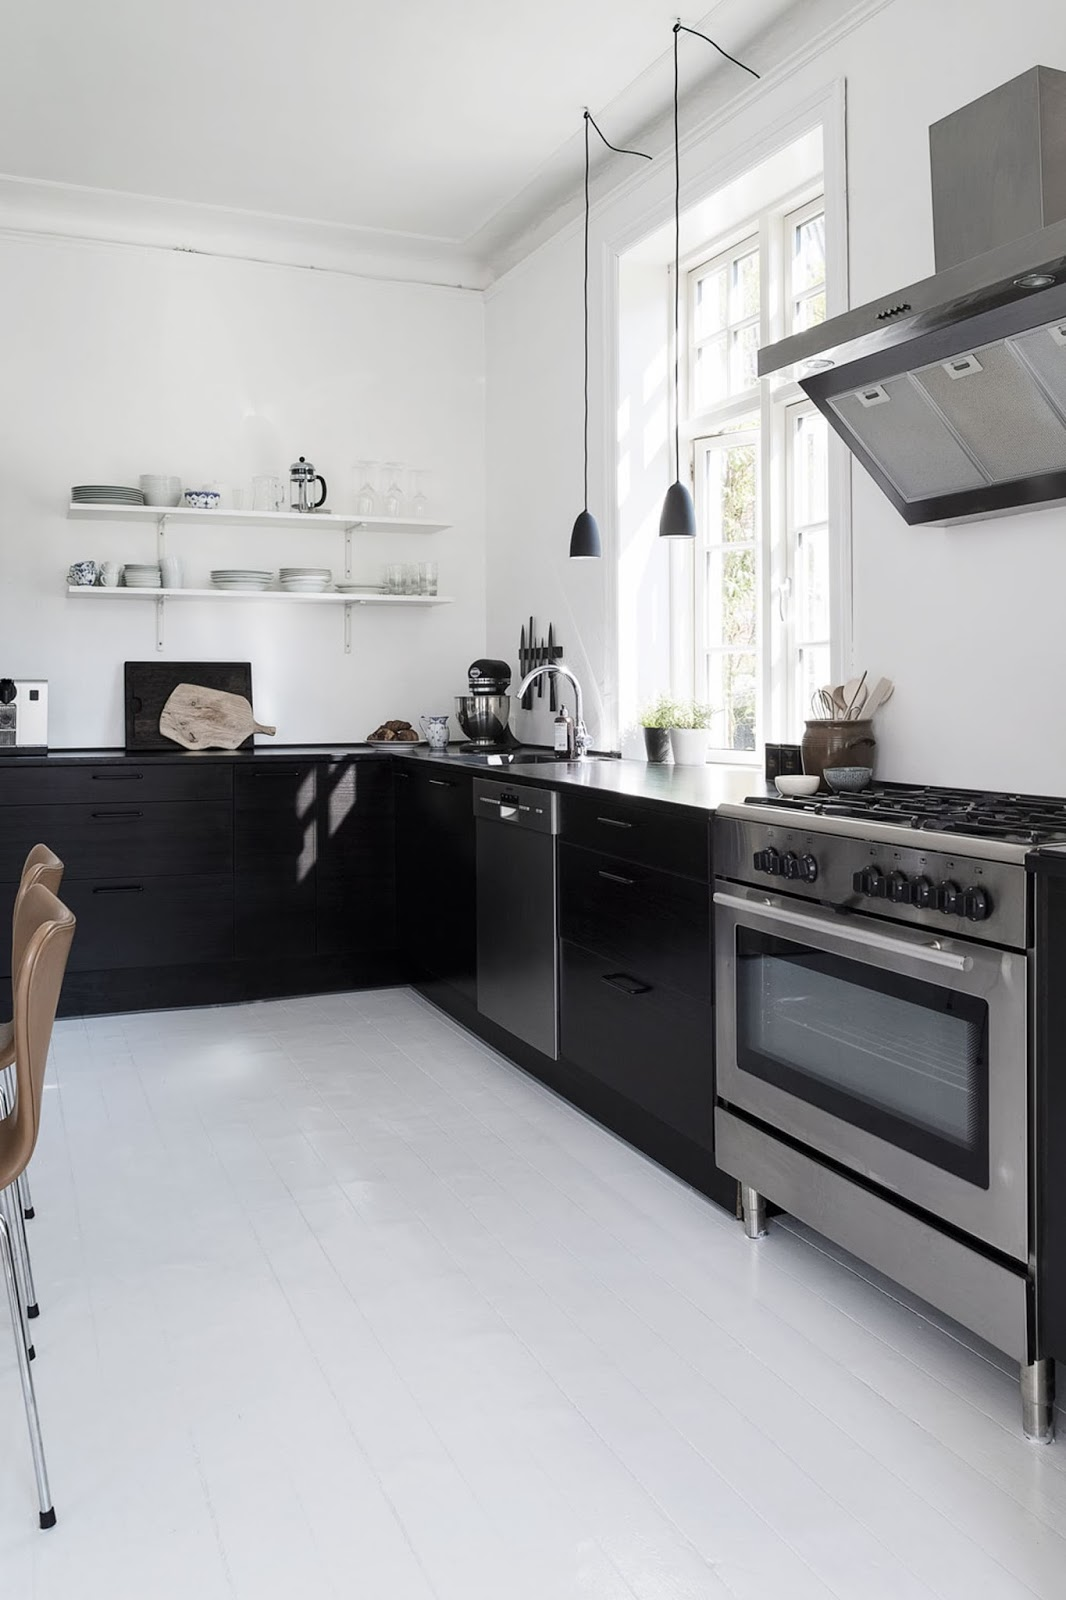 black and white interior design, nordic home, black furniture, white floor, monochrome decor, black kitchen